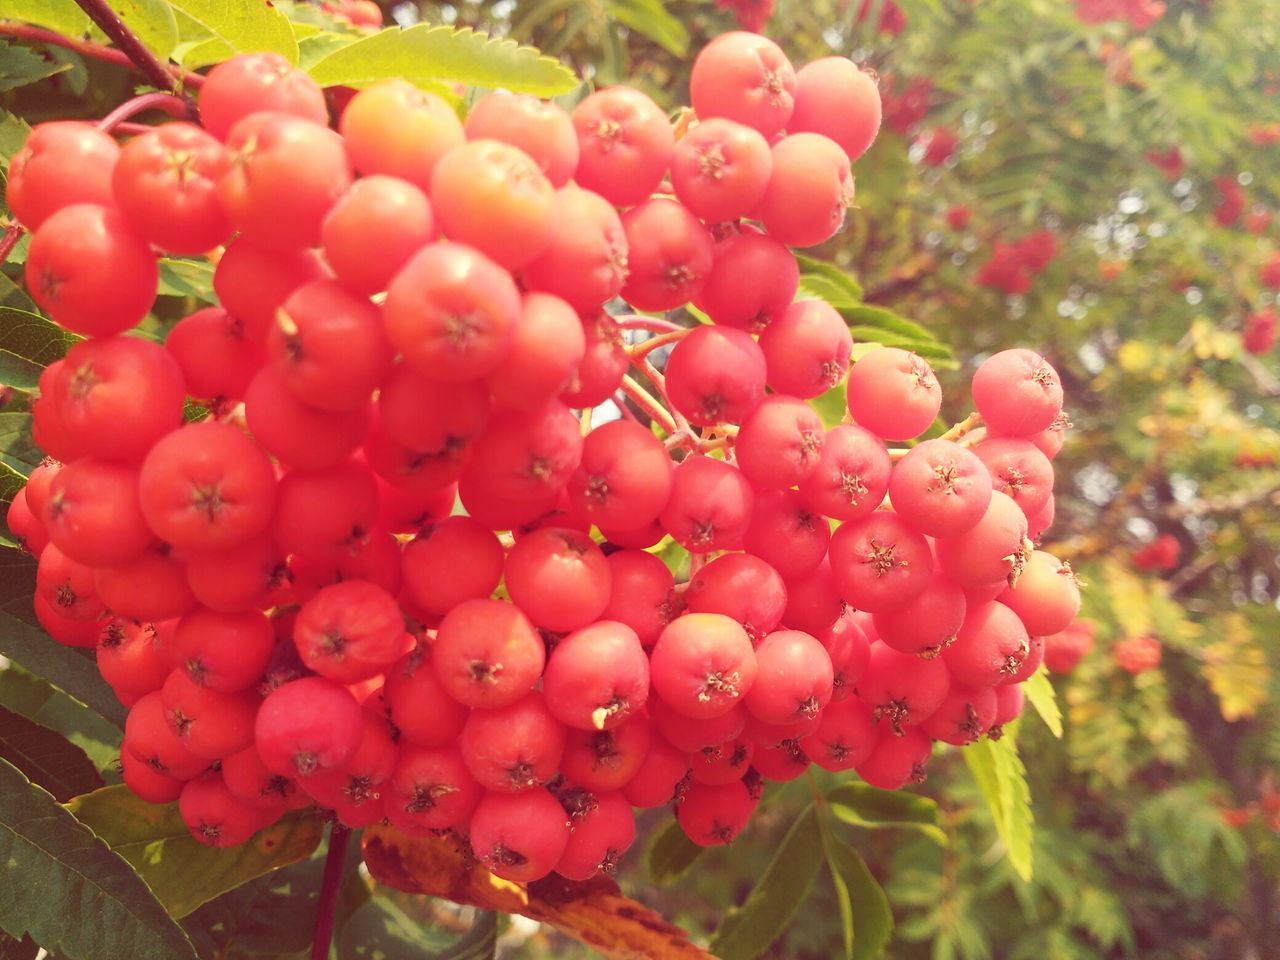 red, outdoors, growth, day, nature, no people, focus on foreground, beauty in nature, plant, close-up, tree, freshness, food